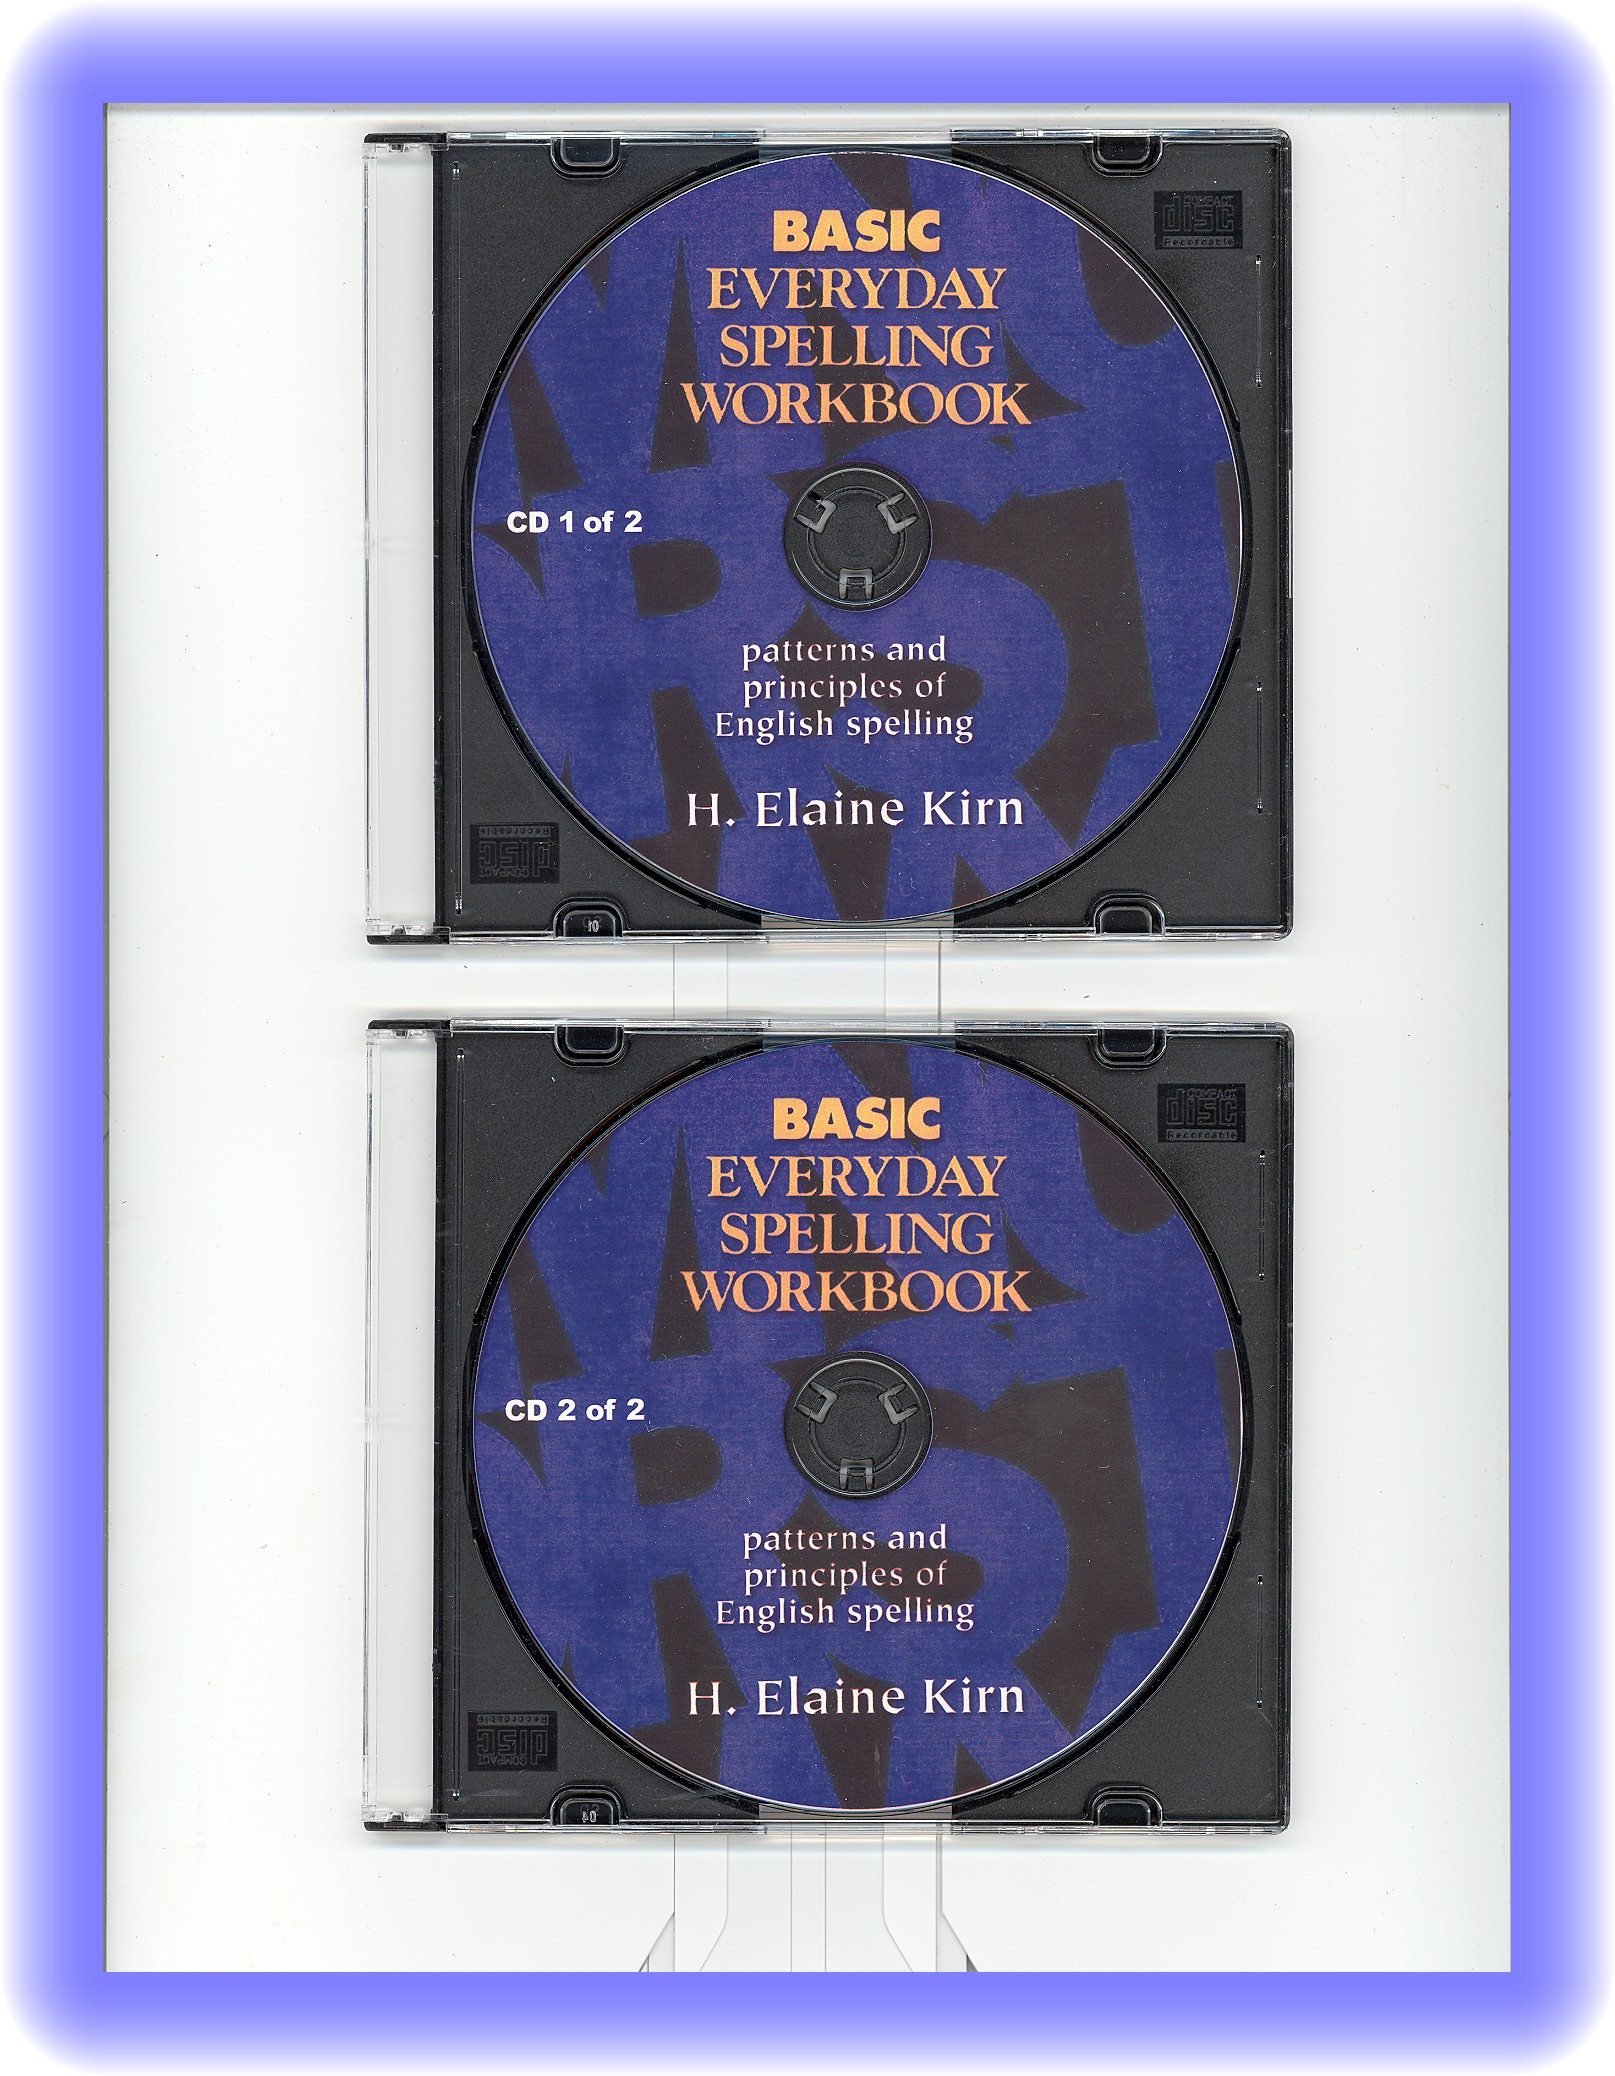 Basic Everyday Spelling: Workbook Audio CD's (2)